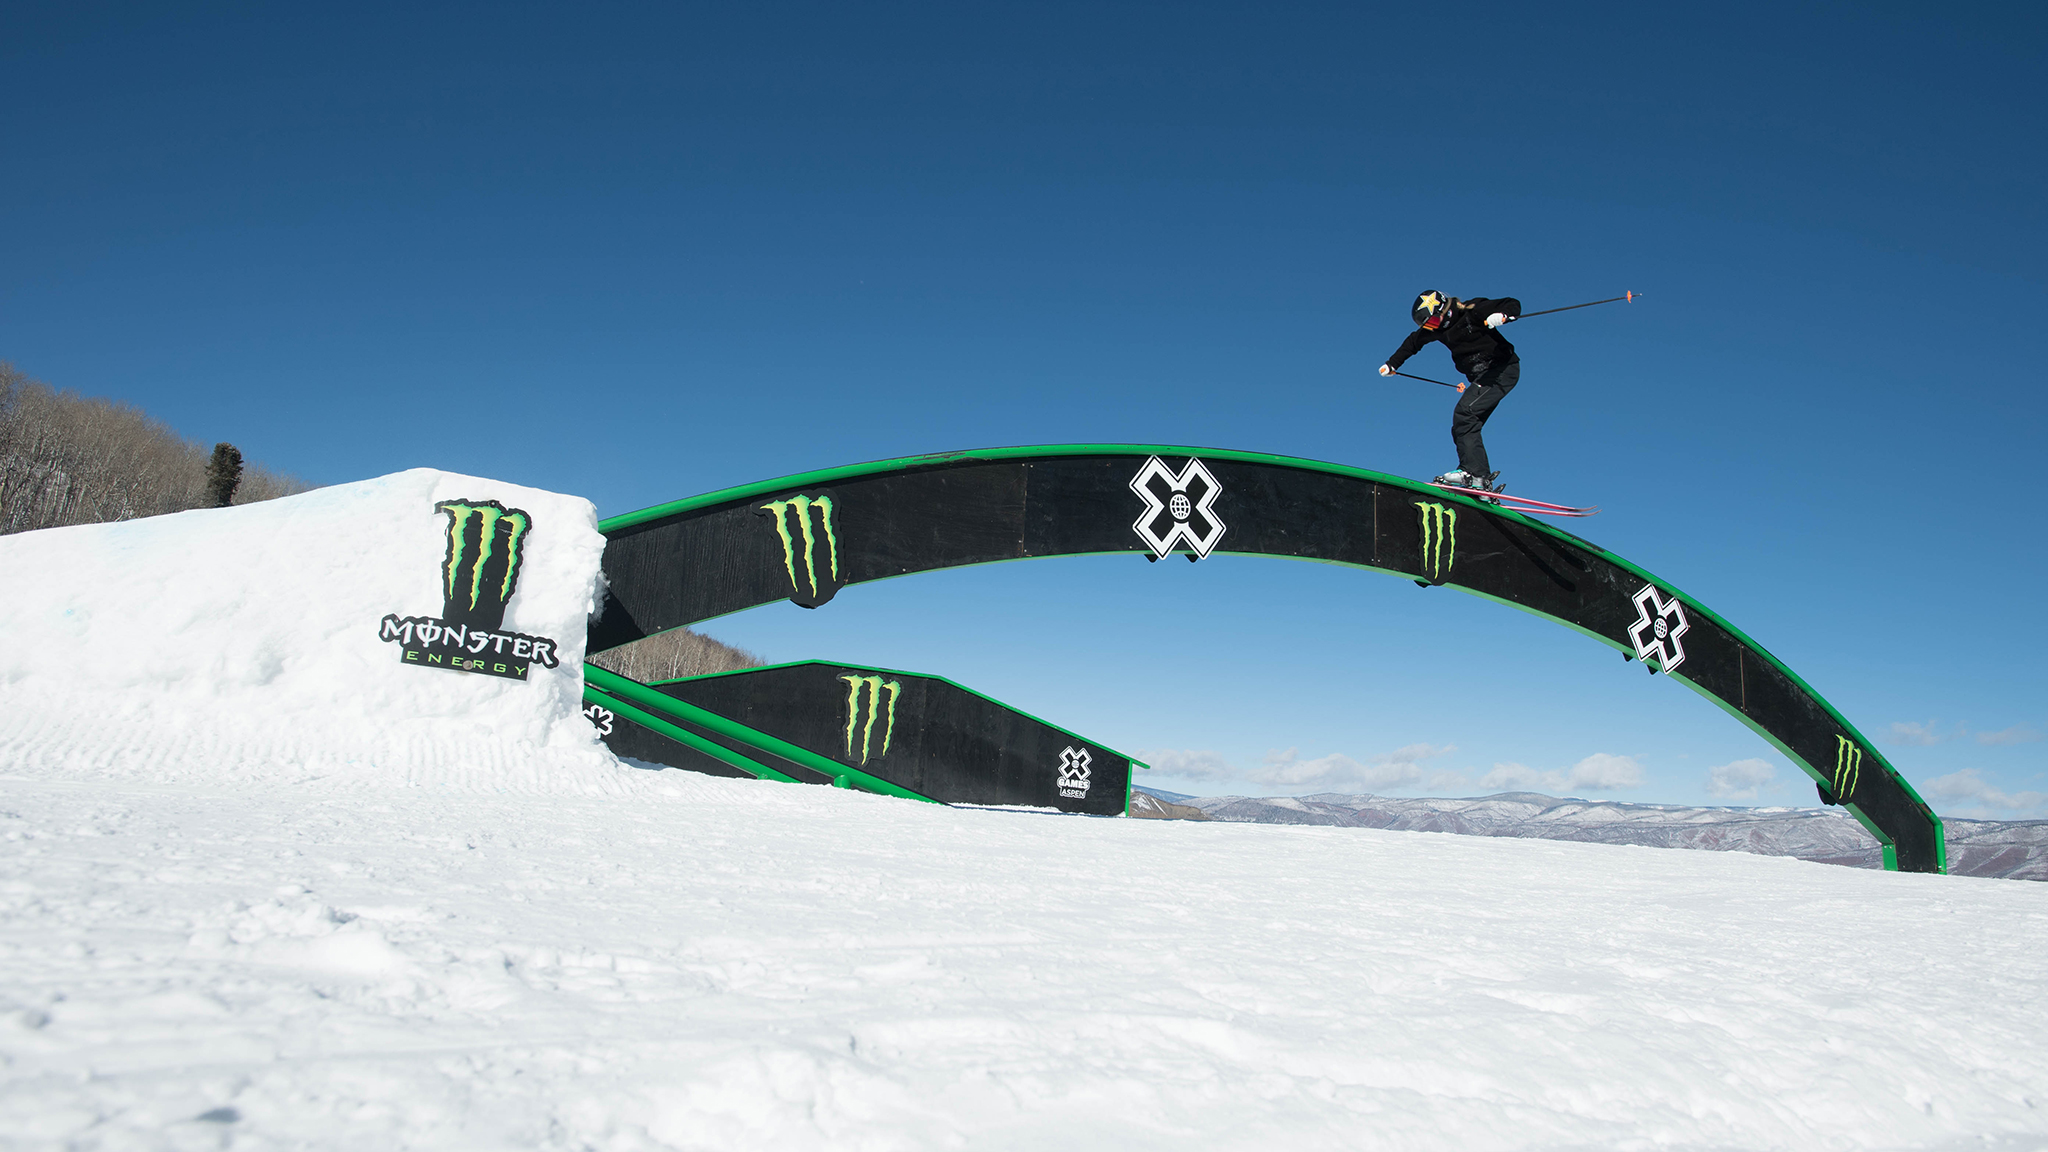 X Games Aspen '18 Course Preview